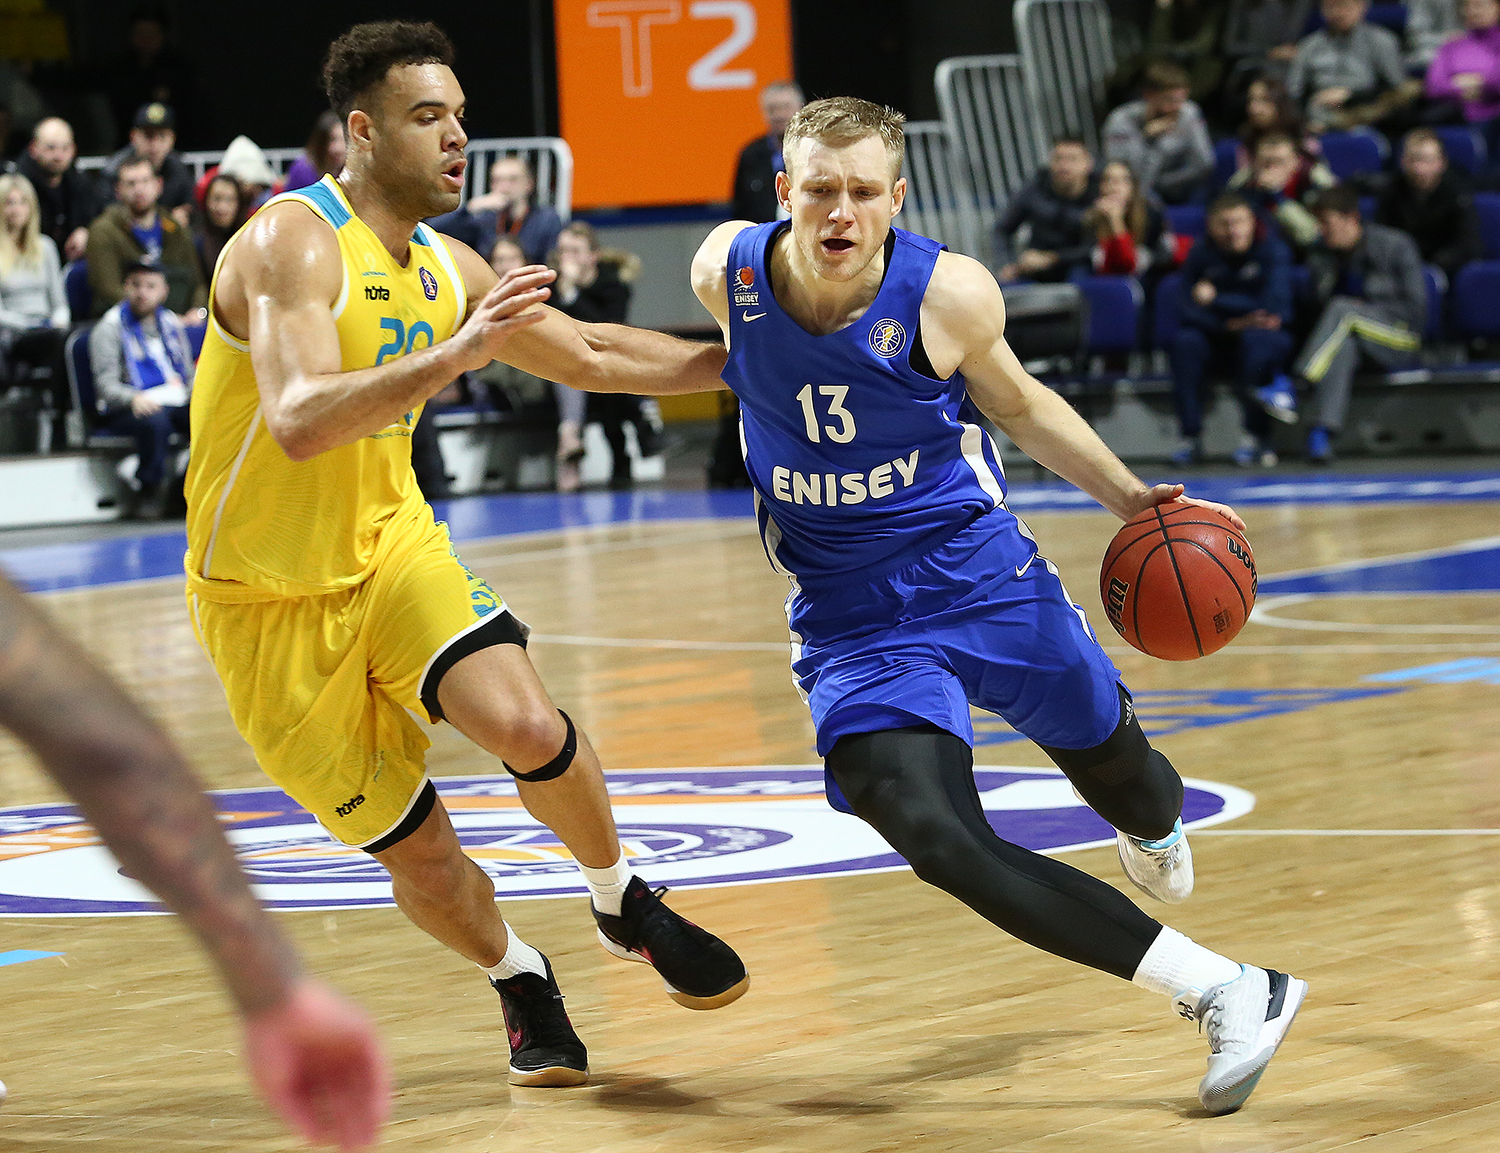 Enisey Deals Astana Third-Straight Loss